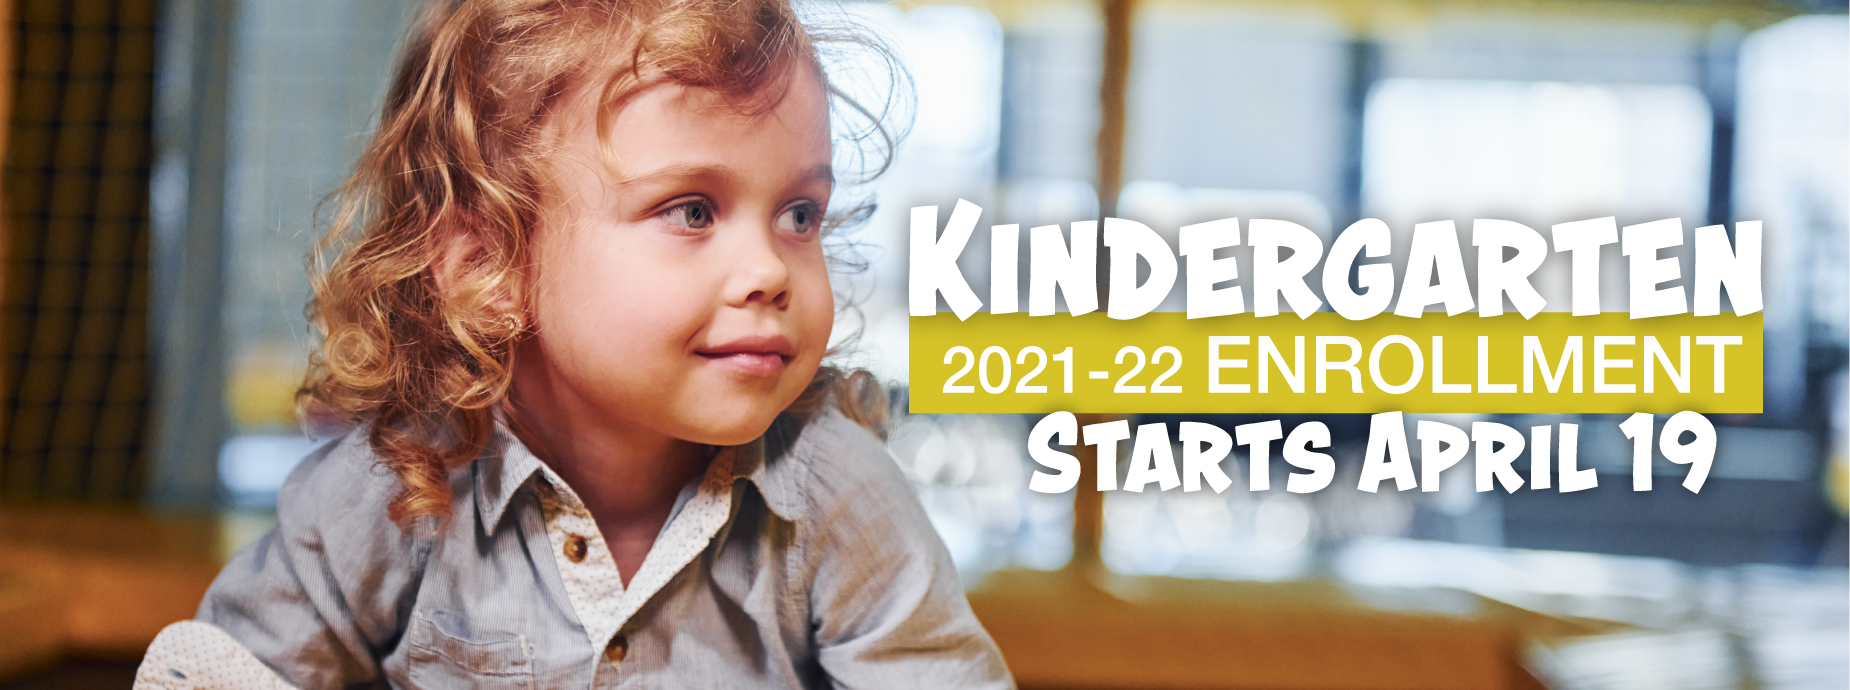 Kindergarten Enrollment 2021-22